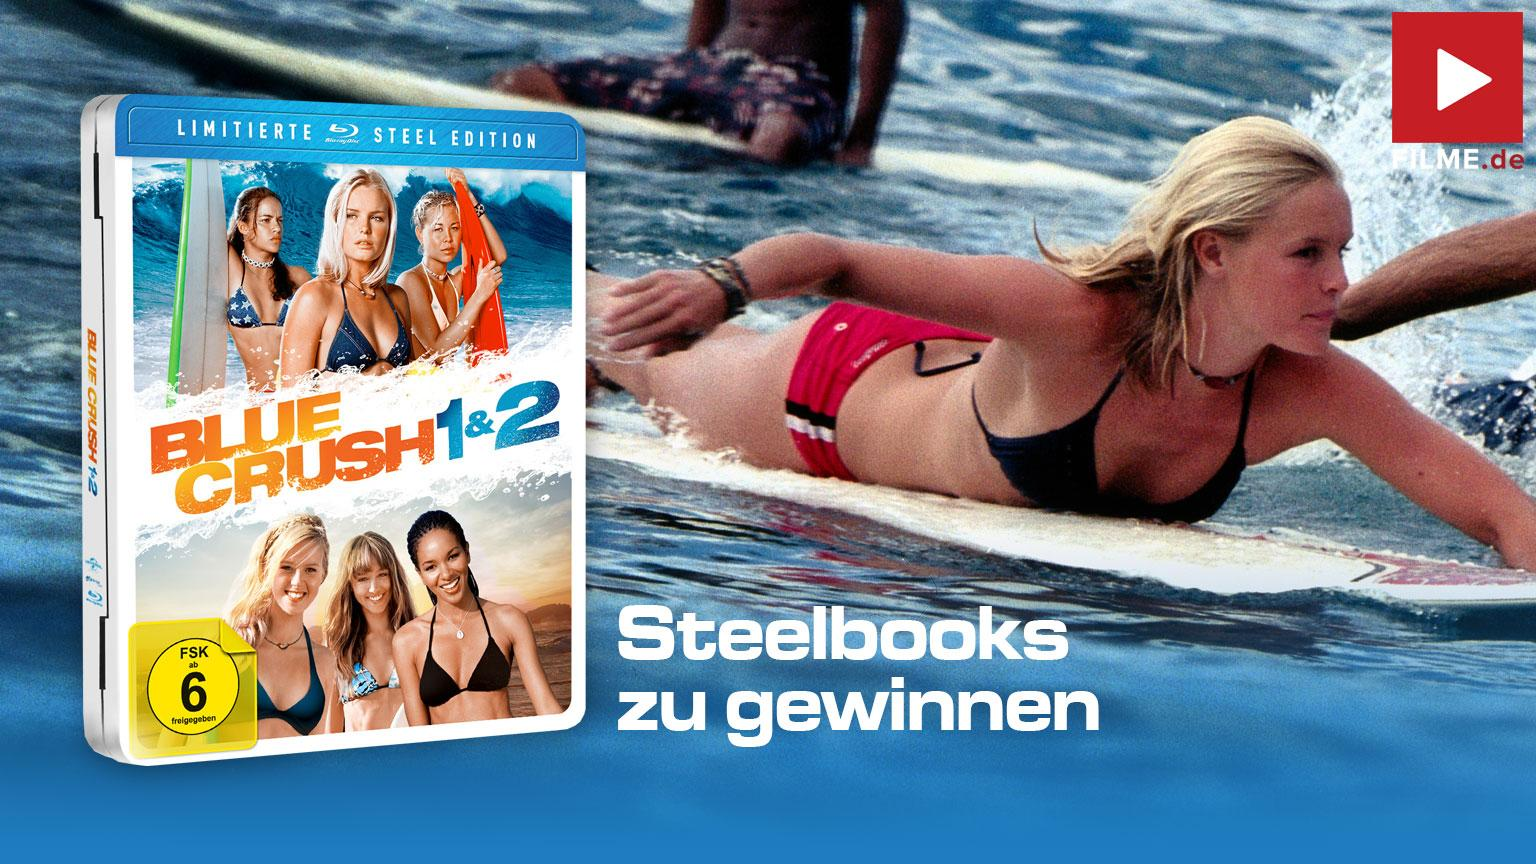 Blue Crush 1 & 2 ( Limitierte Steel Edition) [Blu-ray] Gewinnspiel Artikelbild